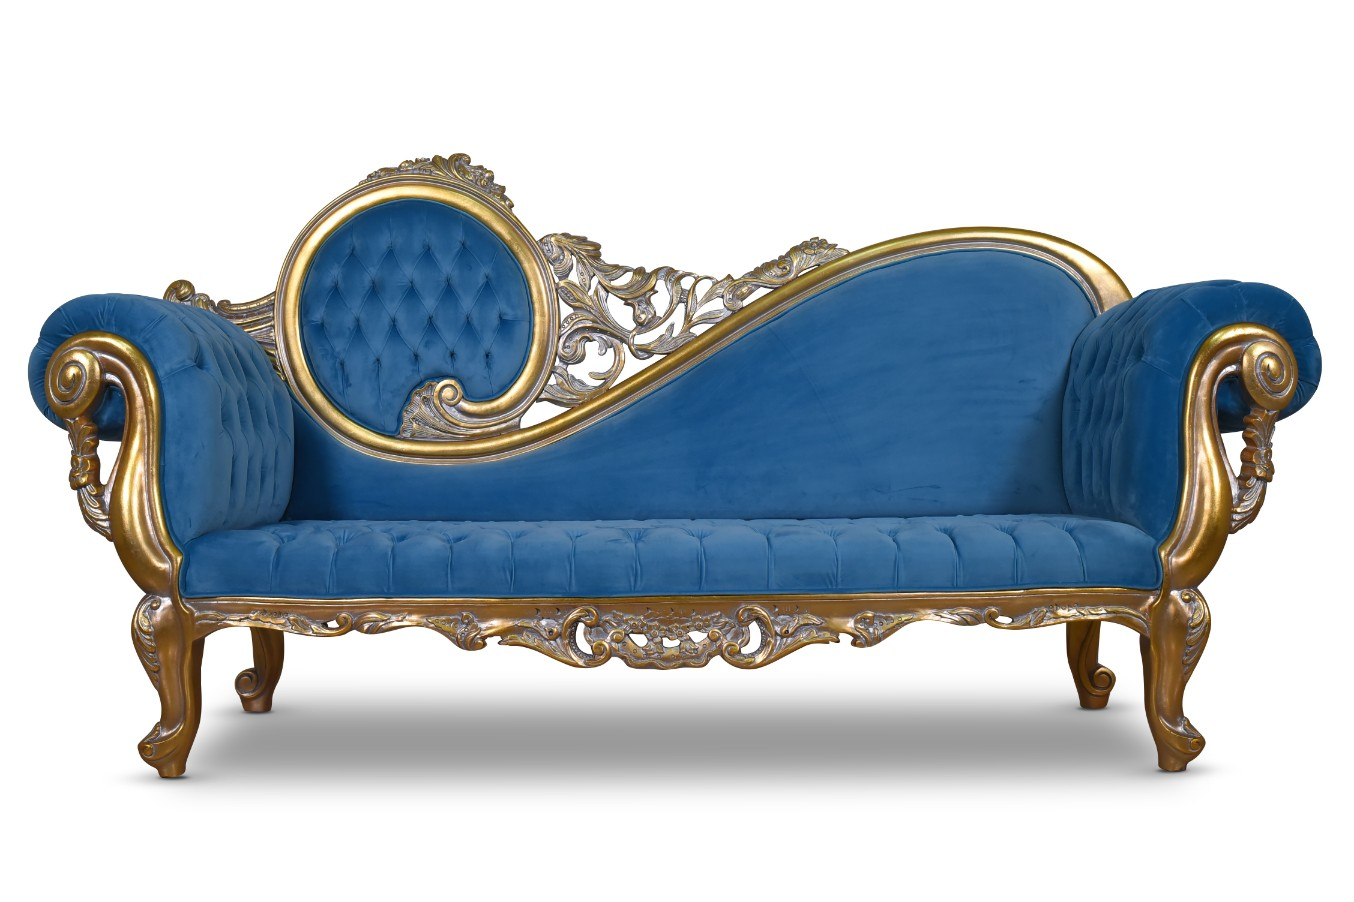 Made To Order Citronelle Victorian Style Gold Leaf Tufted Blue Velvet Chaise Lounge Art De Vie Furniture